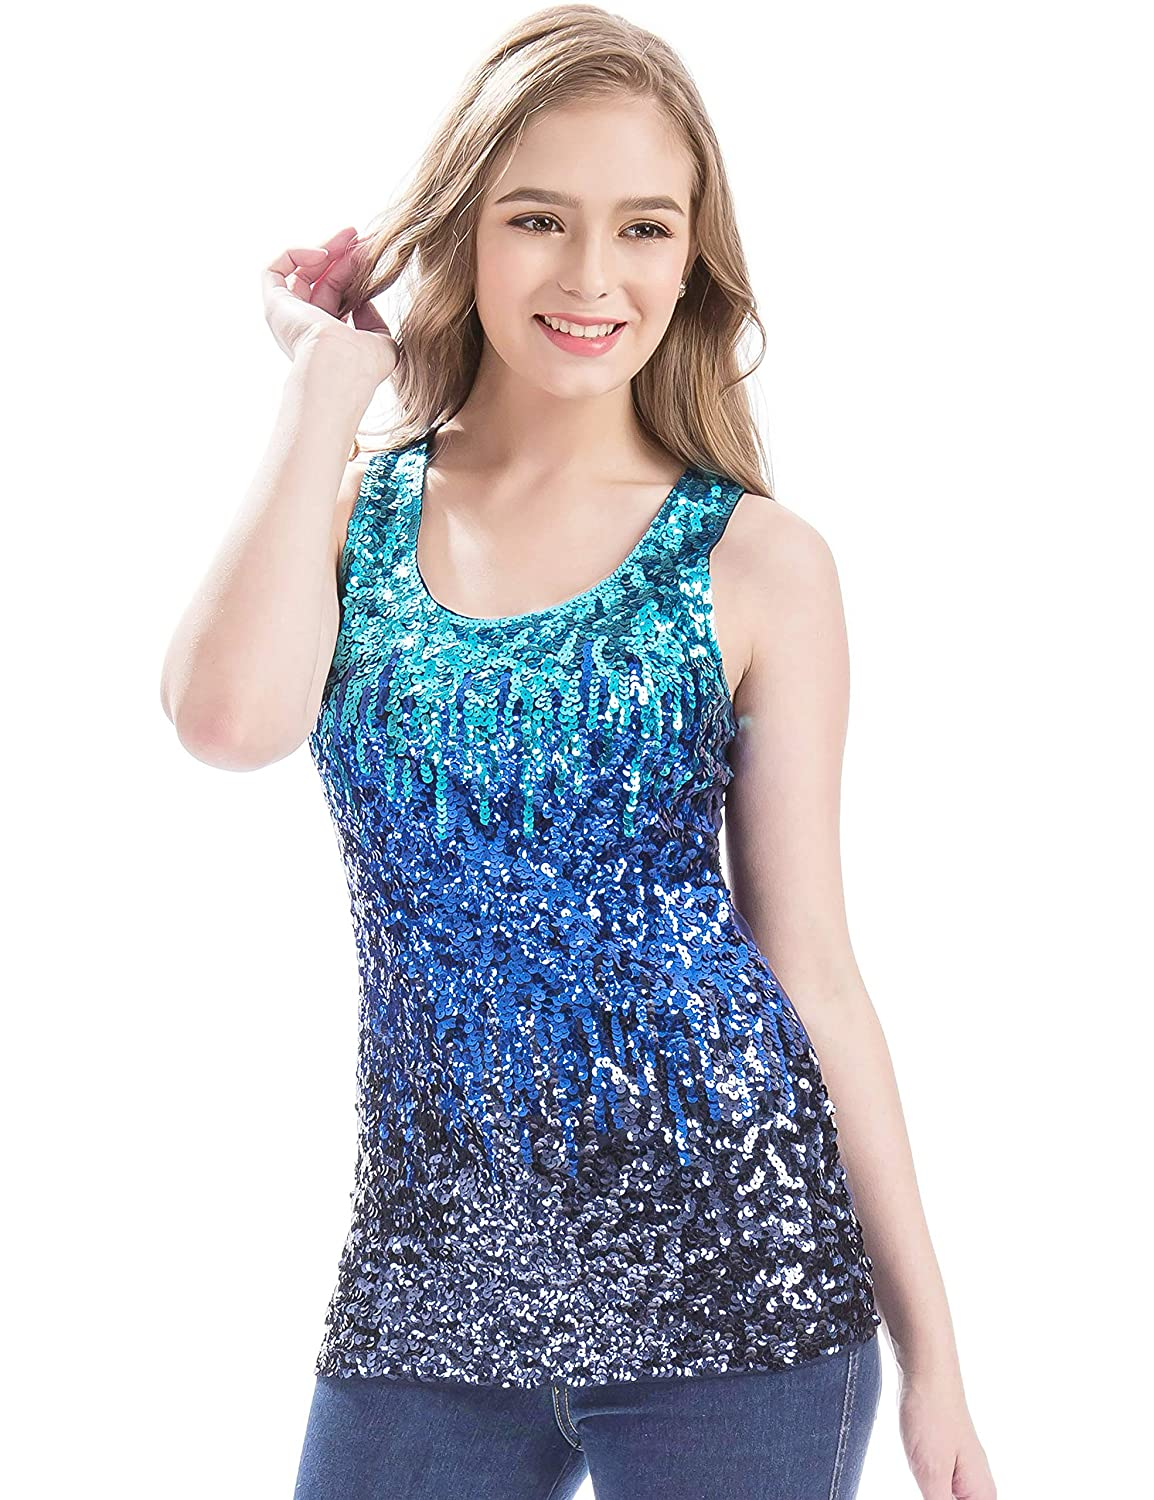 Mermaid Women's Sparkle Gradient Blue Sequin Front Embellished Tank Top - DeluxeAdultCostumes.com